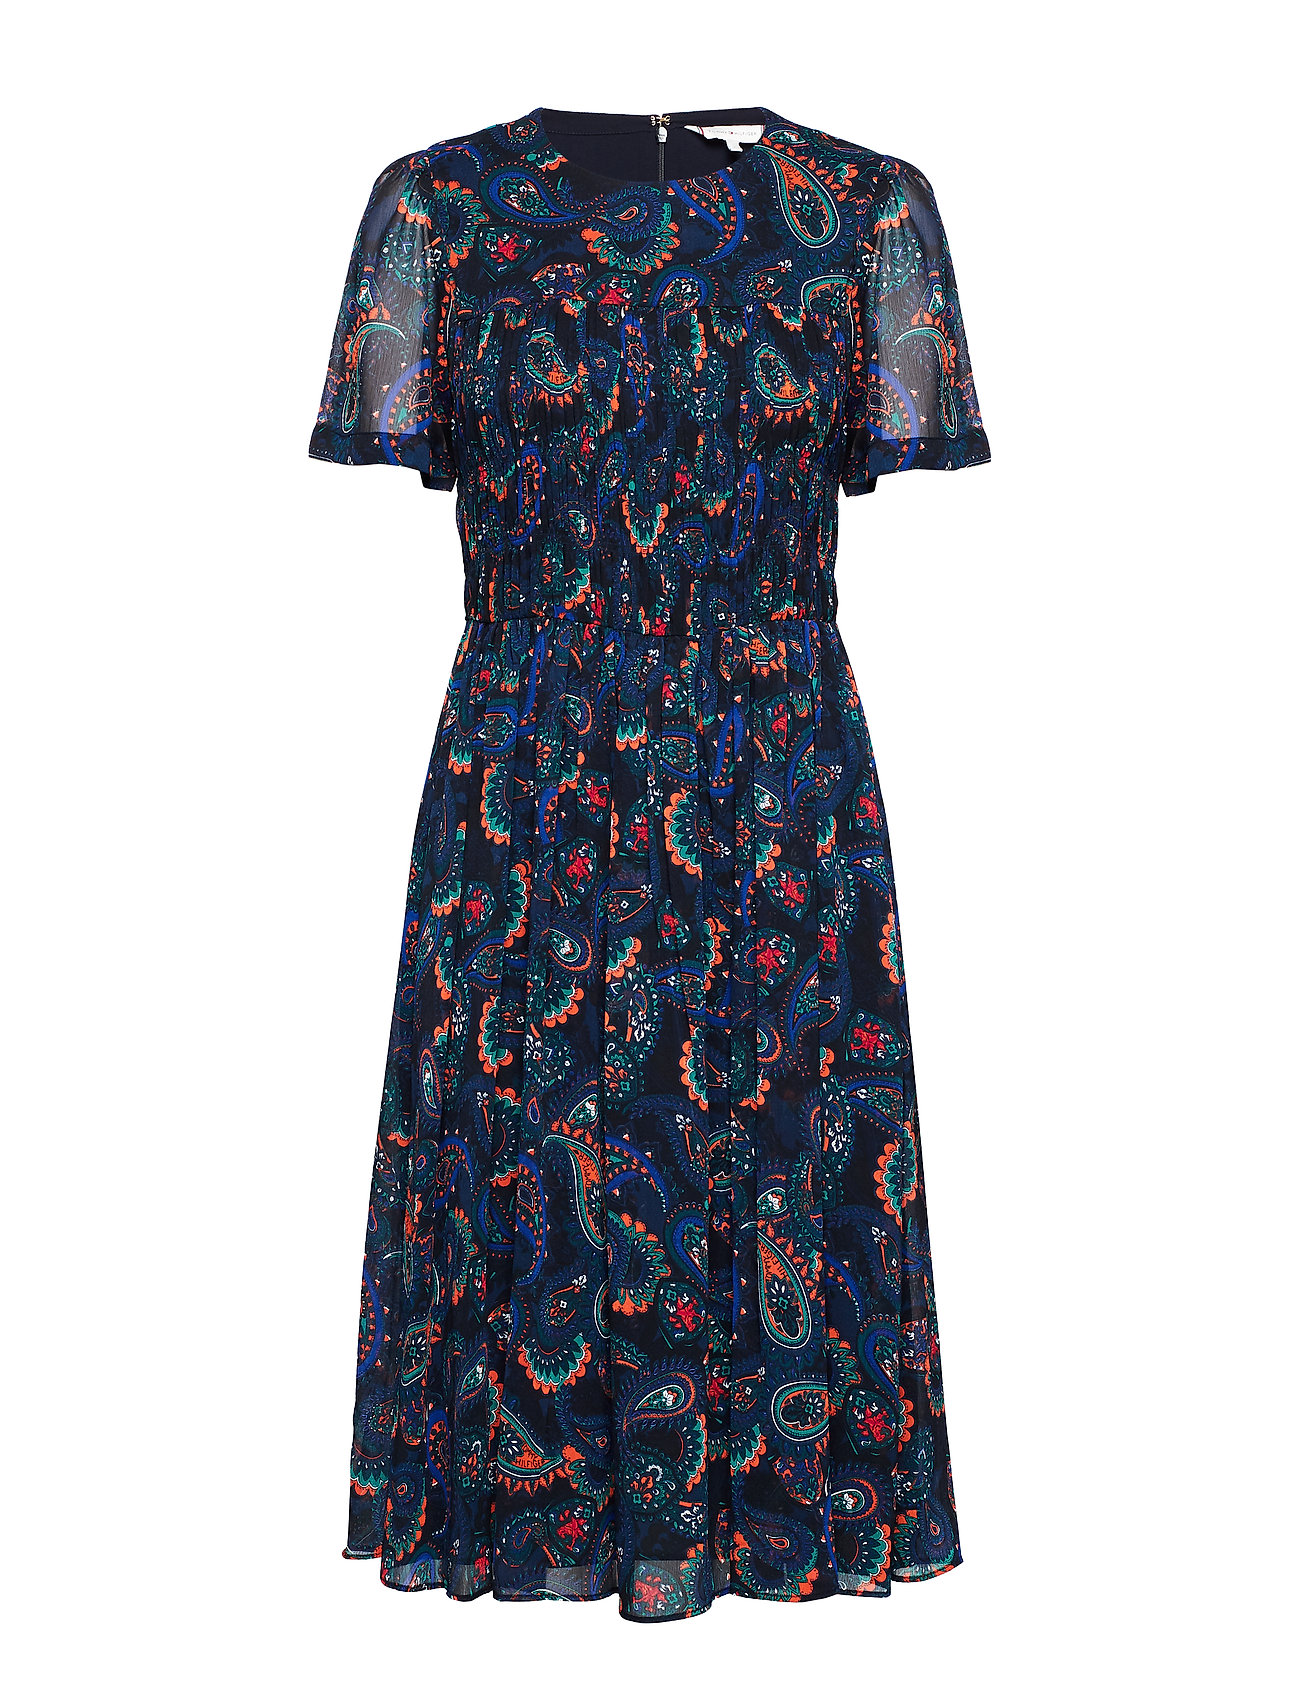 Tommy Hilfiger BLAIR DRESS SS - PAISLEY BORDER